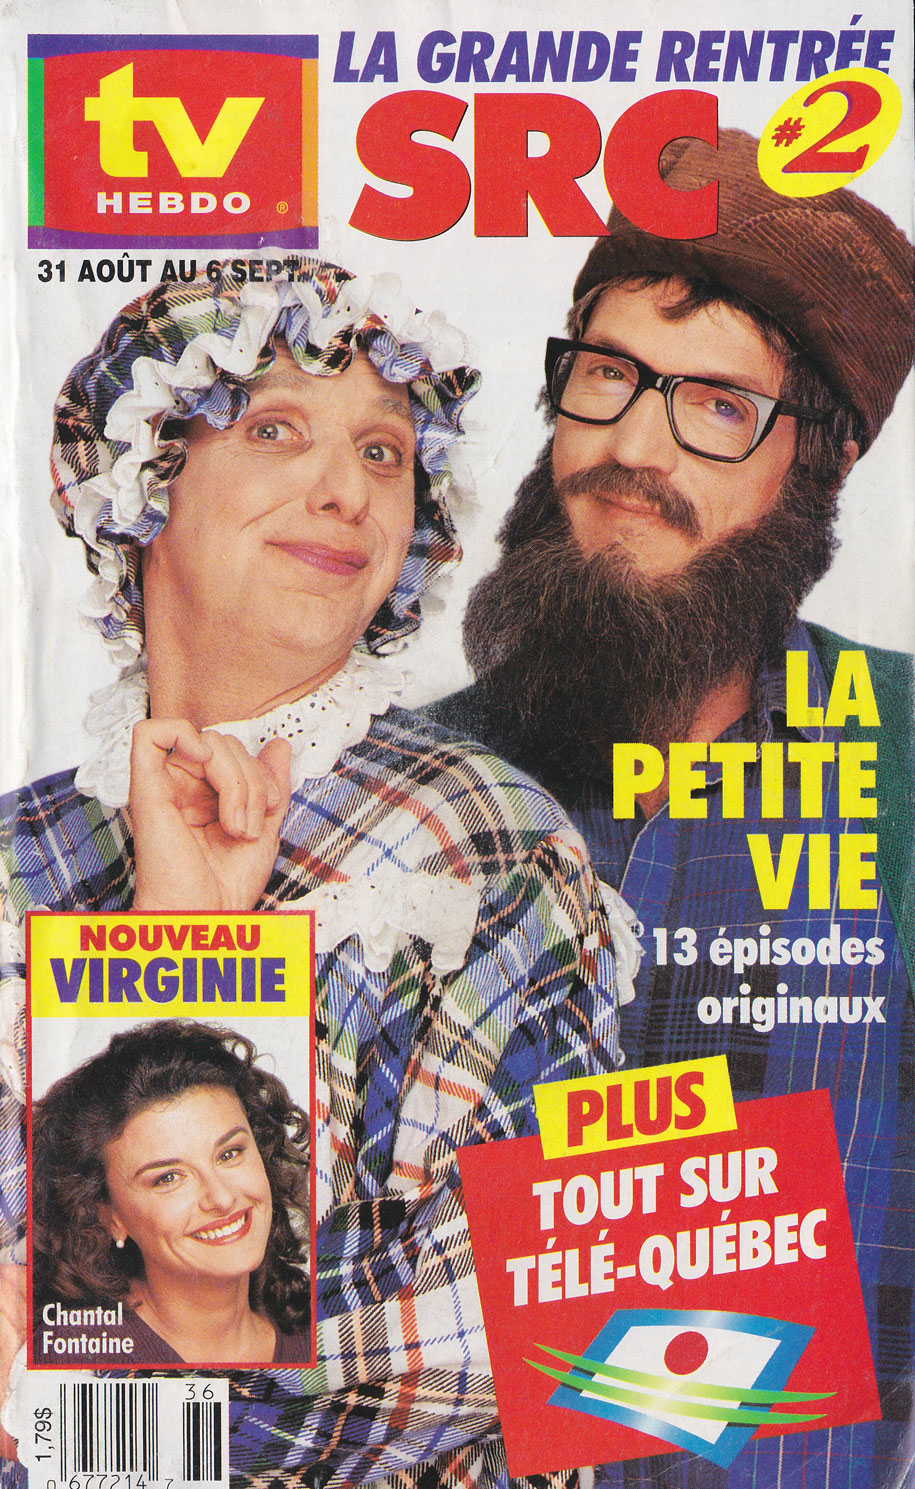 TV Guide August 31 1996 TV Hebdo Édition Nationale Front Cover